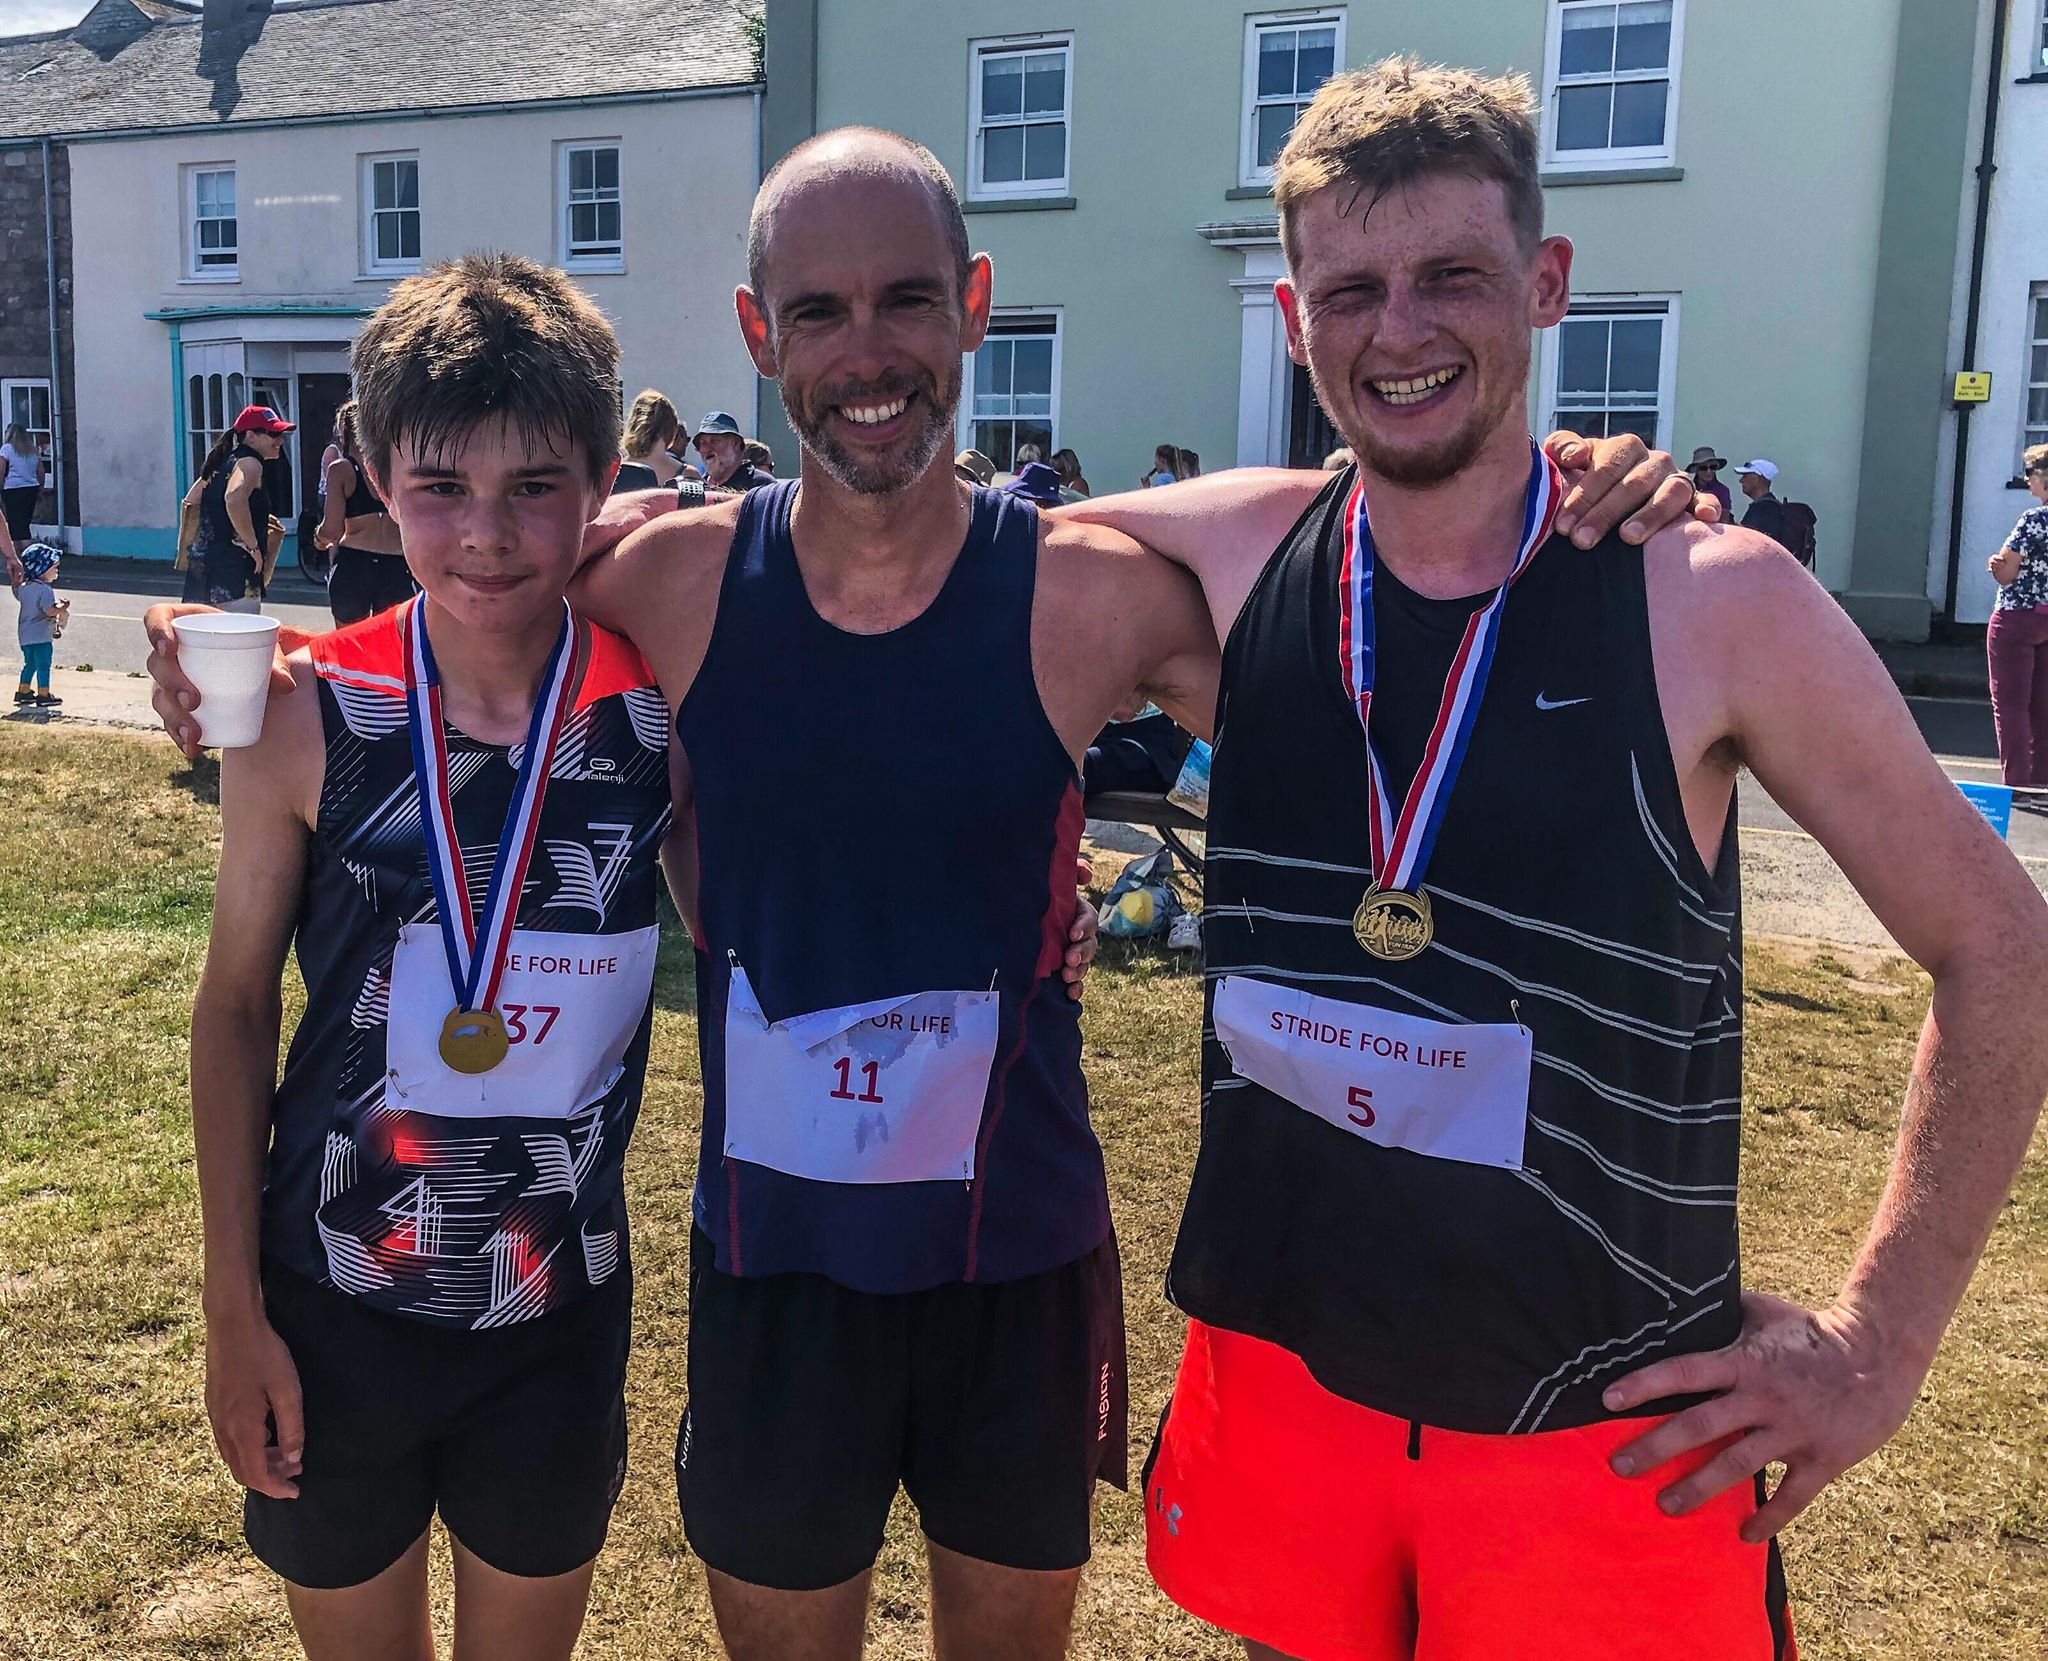 From left to right. 12-year-old Kenny Gibson who was delighted with a personal best on the 10K run. Thomas Stevens crossed the finish line 1st in the 10K run and Leigh Reeve who finished second in the 10K run. Image courtesy of Leigh Reeve.